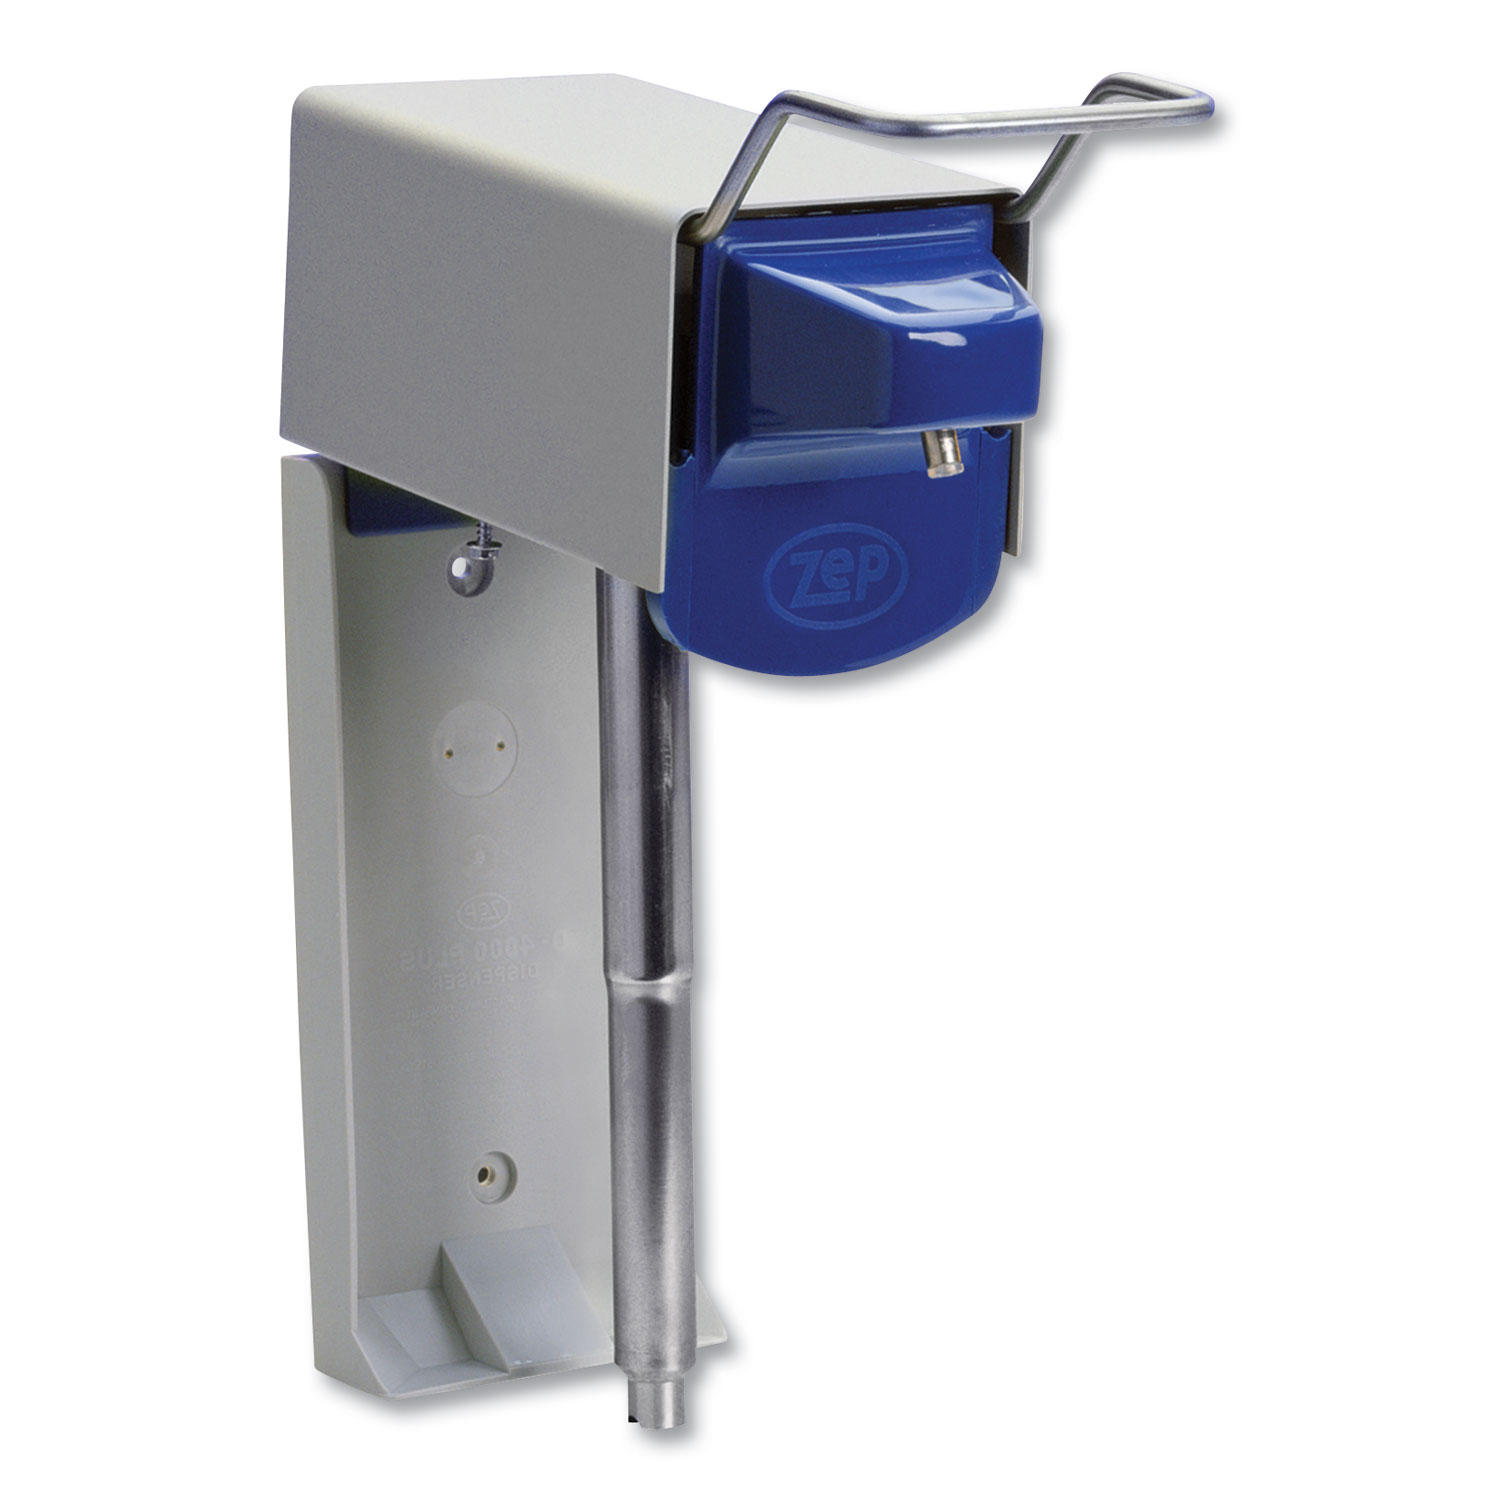 Heavy Duty Hand Care Wall Mount System, 1 gal, 5 x 4 x 14, Silver/Blue